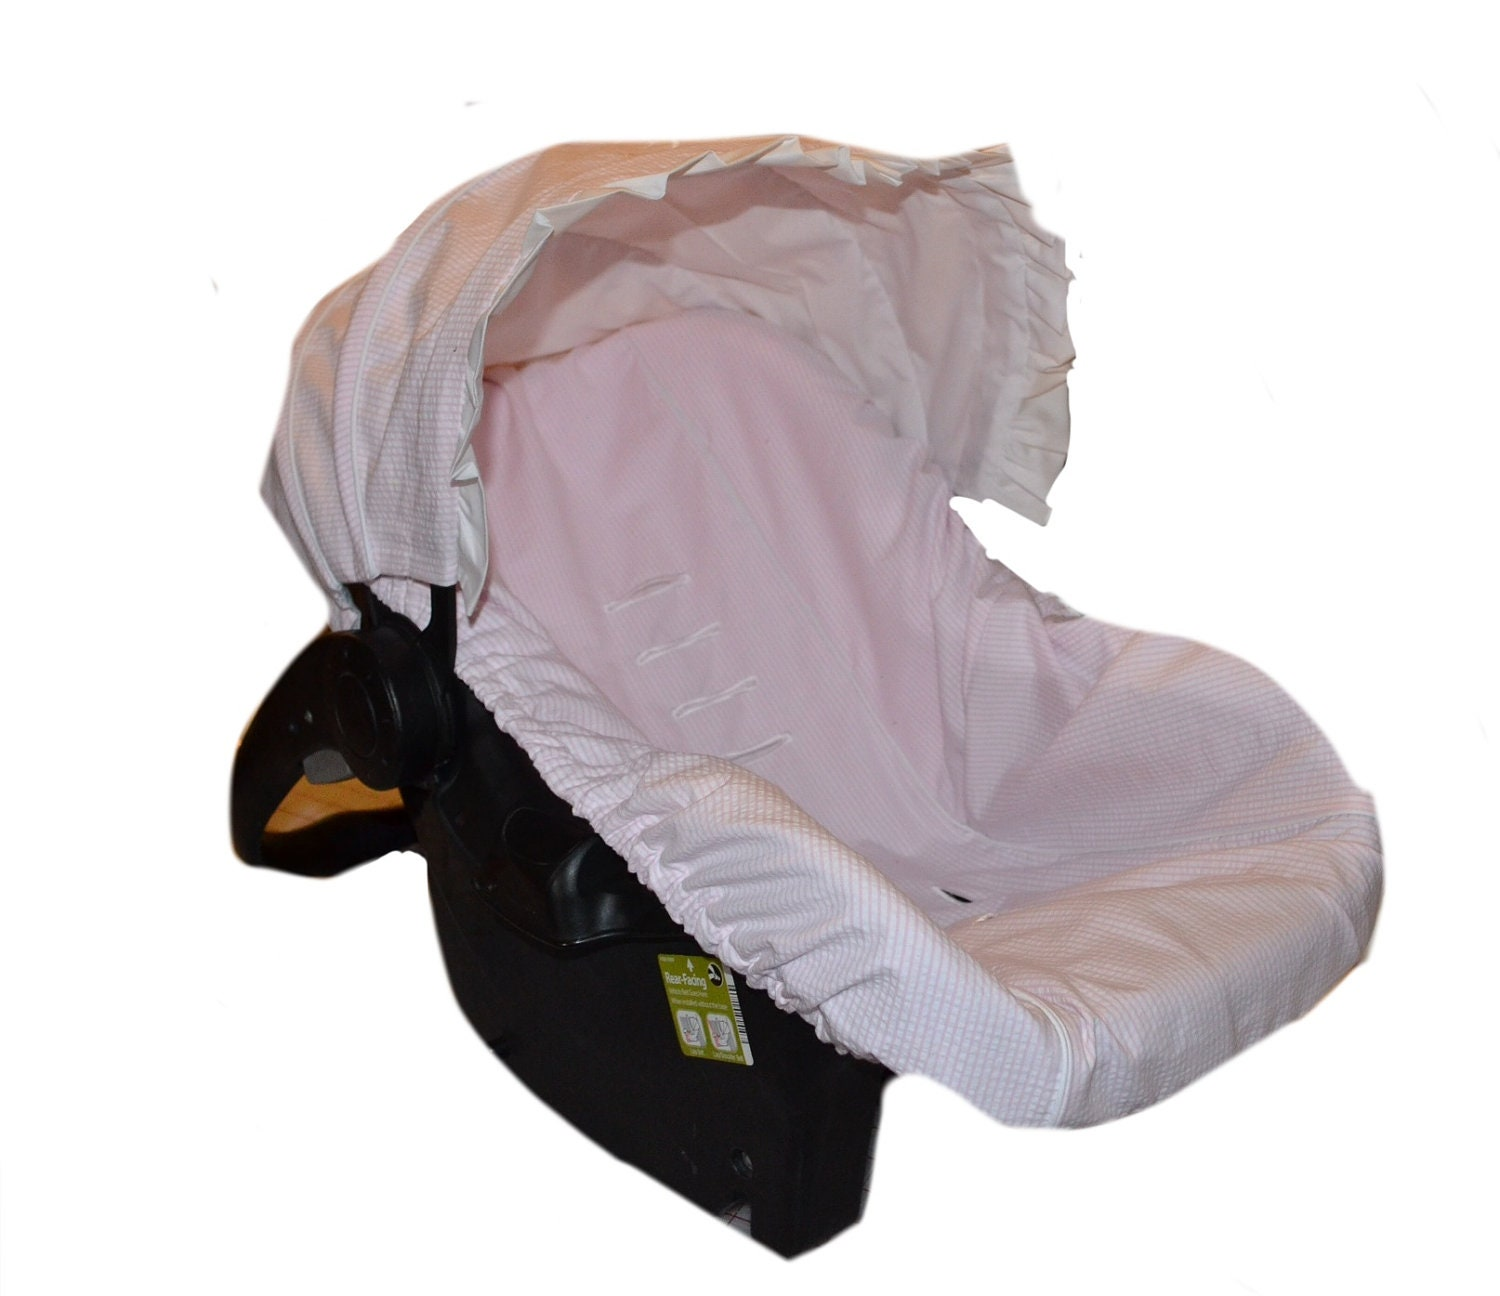 baby car sear cover infant car seat cover slip cover pink. Black Bedroom Furniture Sets. Home Design Ideas